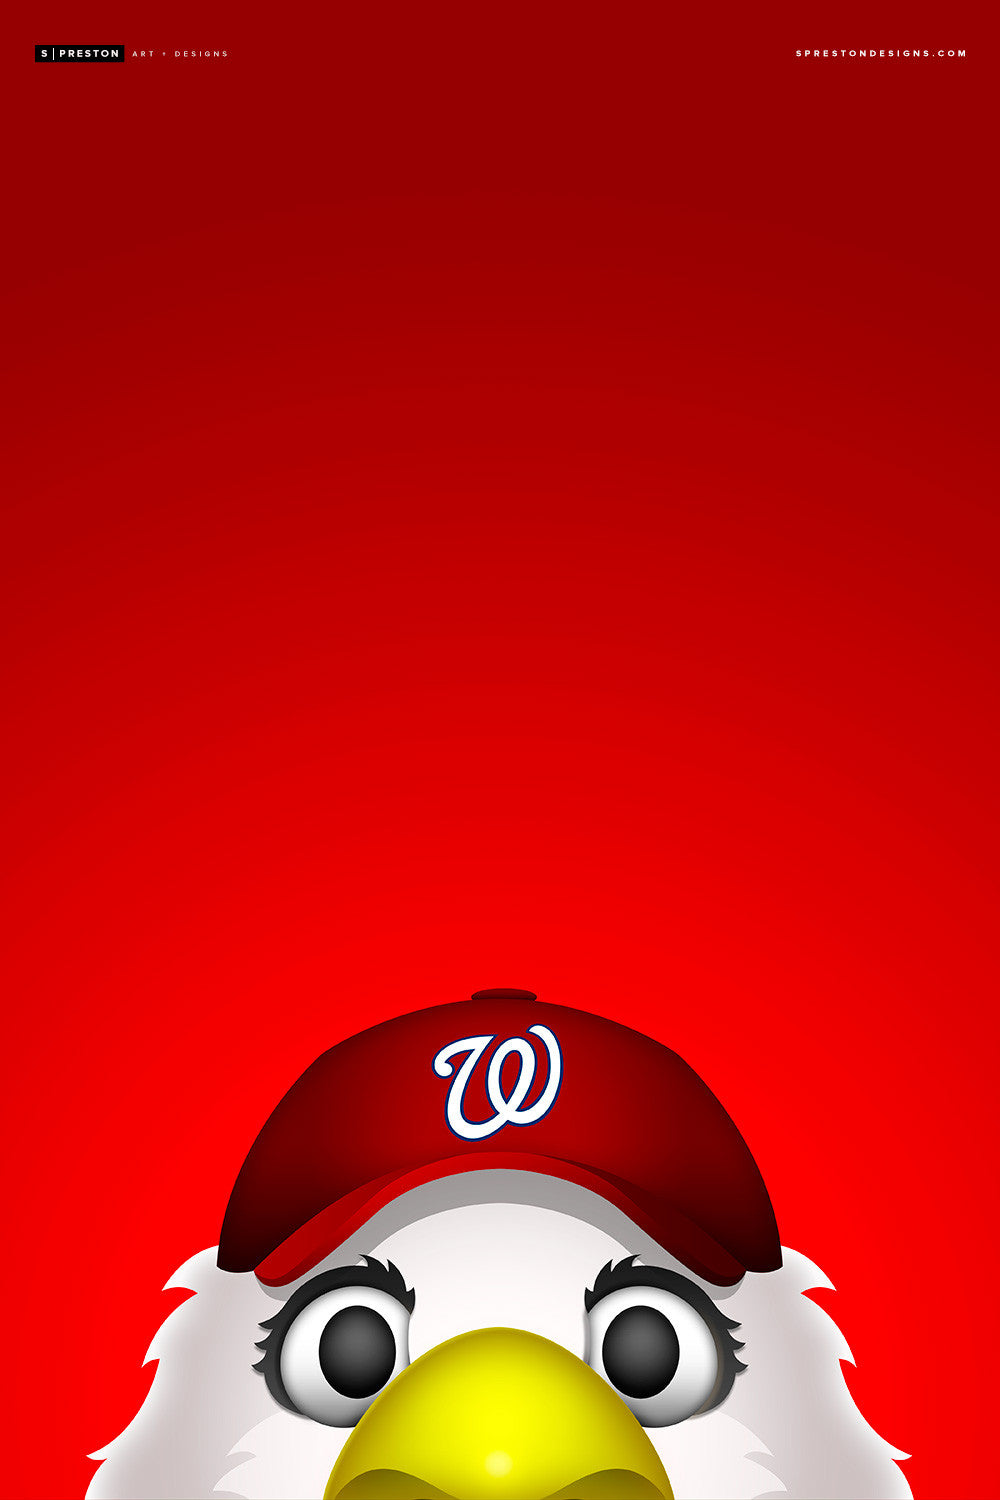 Minimalist Screech Canvas Canvas - Washington Nationals - S. Preston Art + Designs